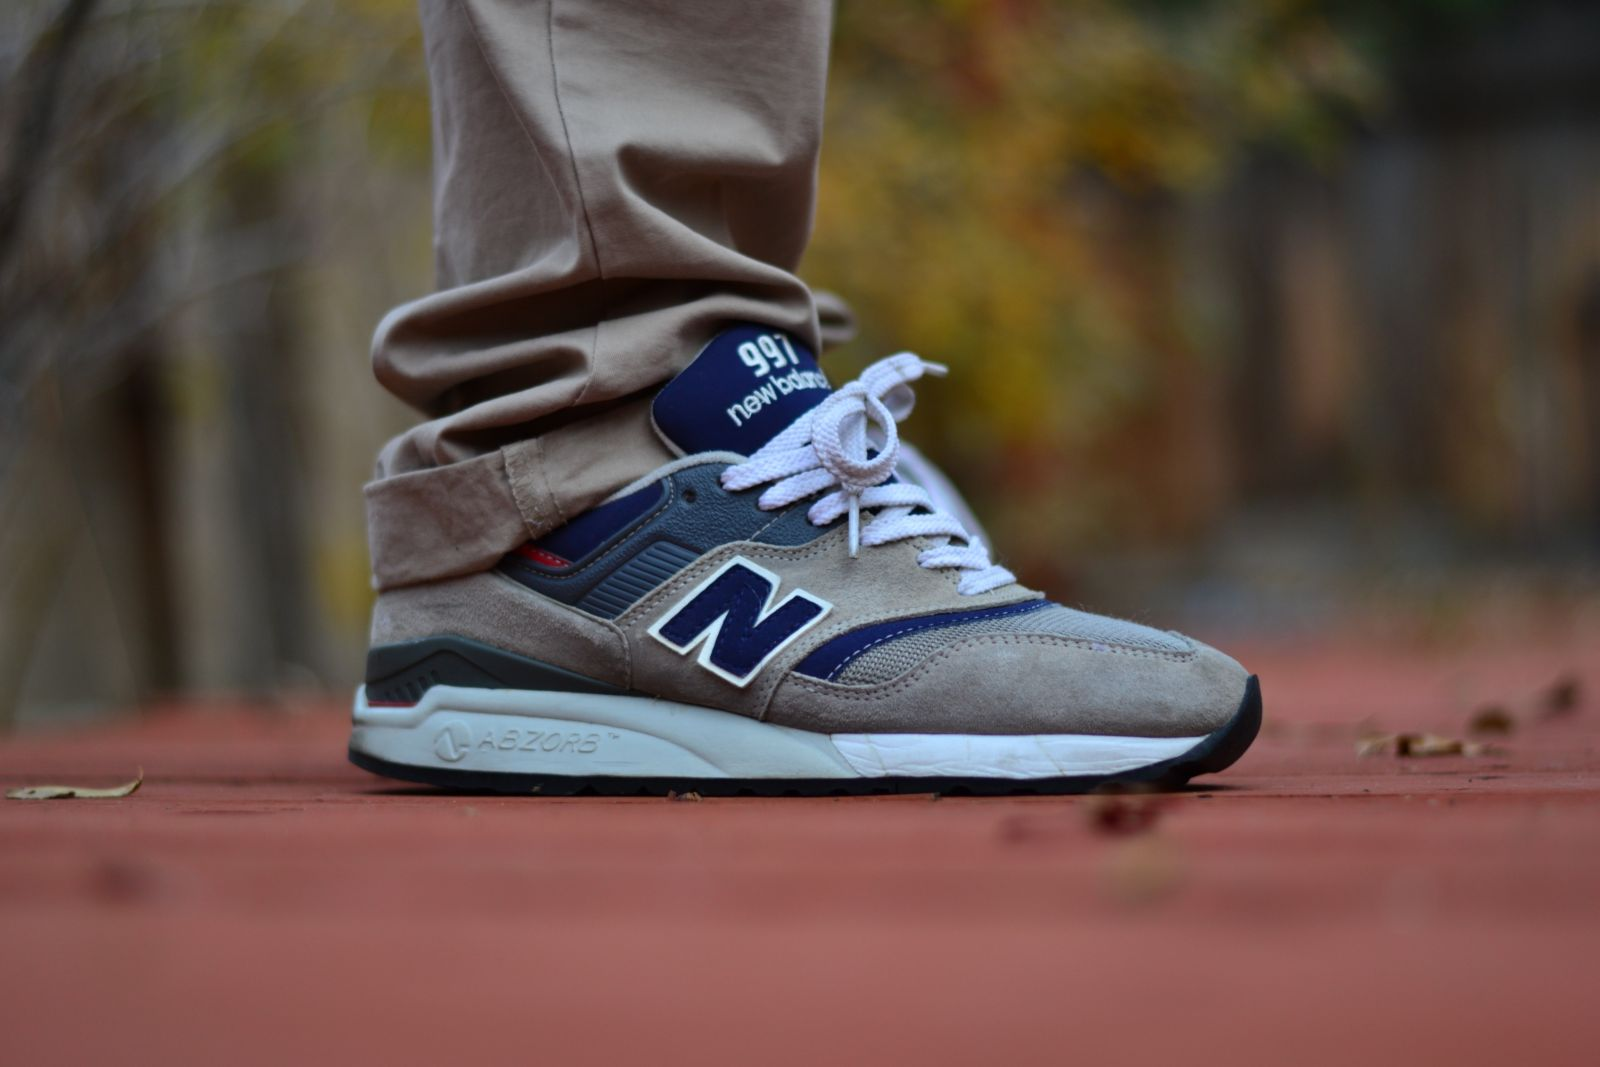 j.crew x new balance made in usa m998 independence day